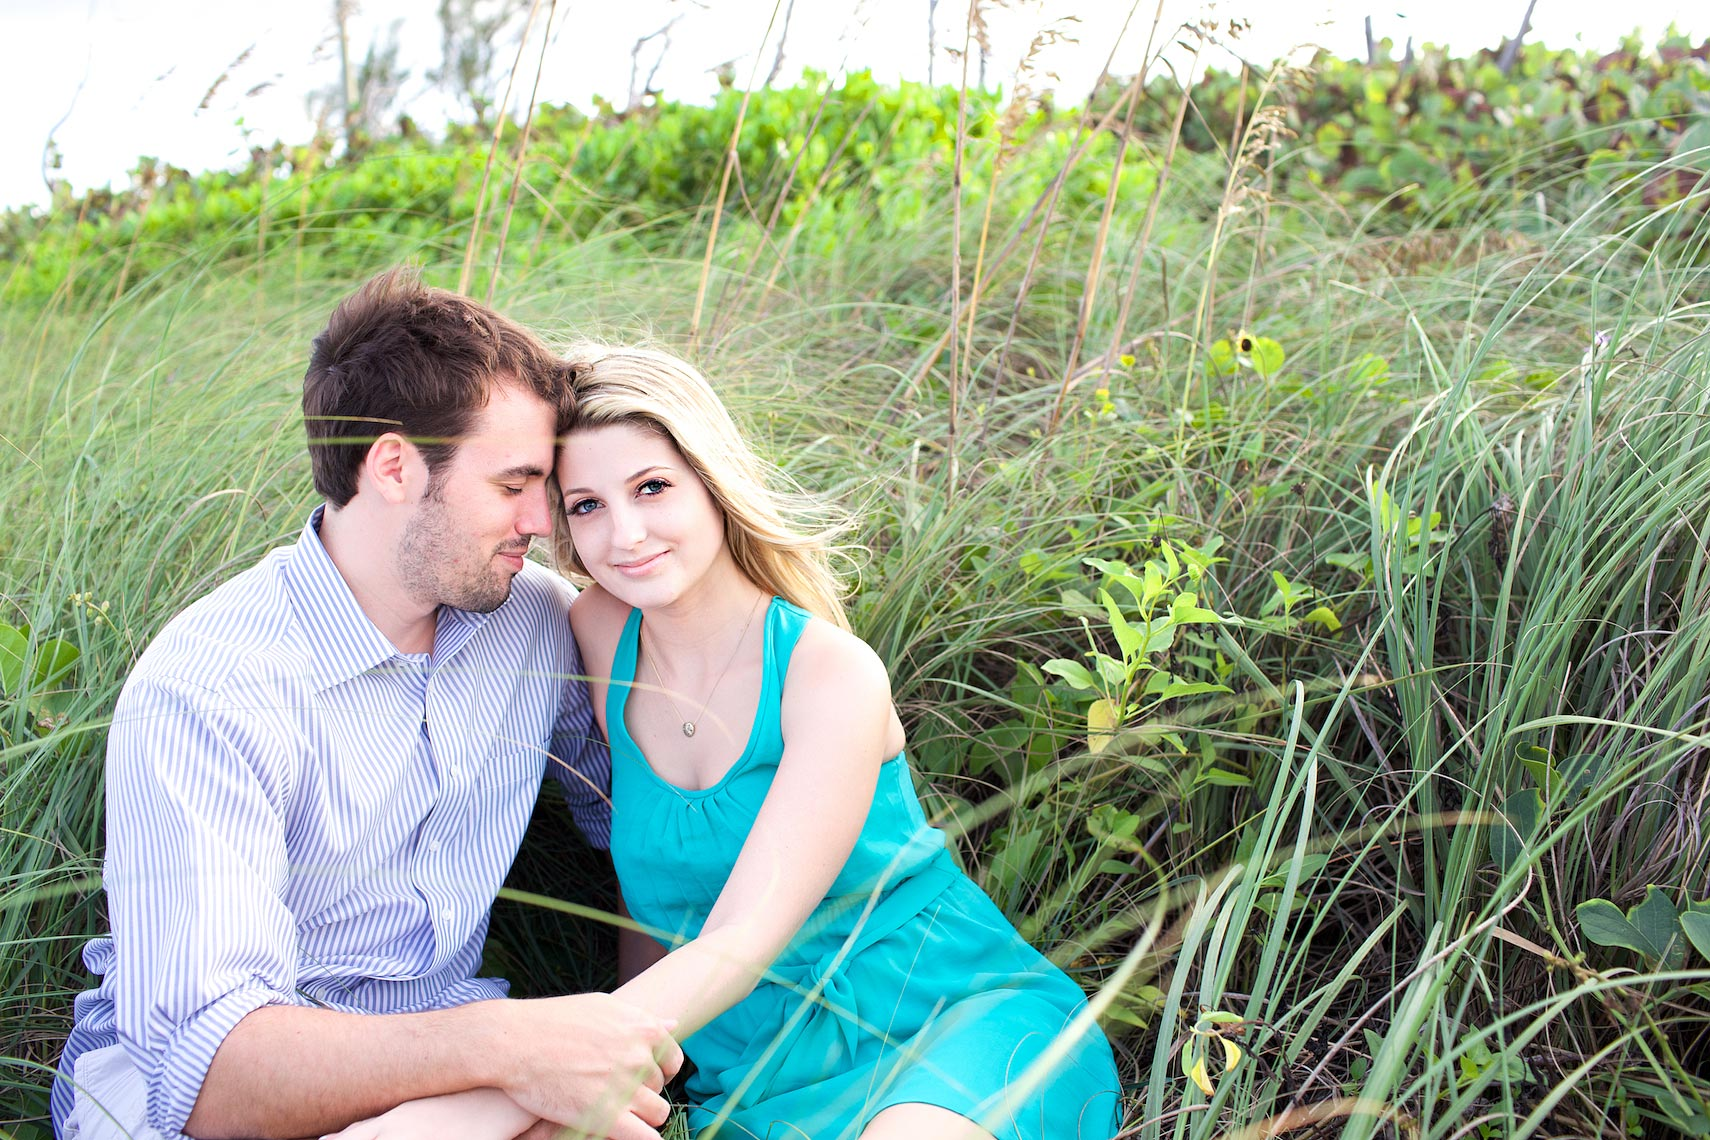 couple_engagement_photography_MG_5911_Robert_Holland_Big_Fish_Studios